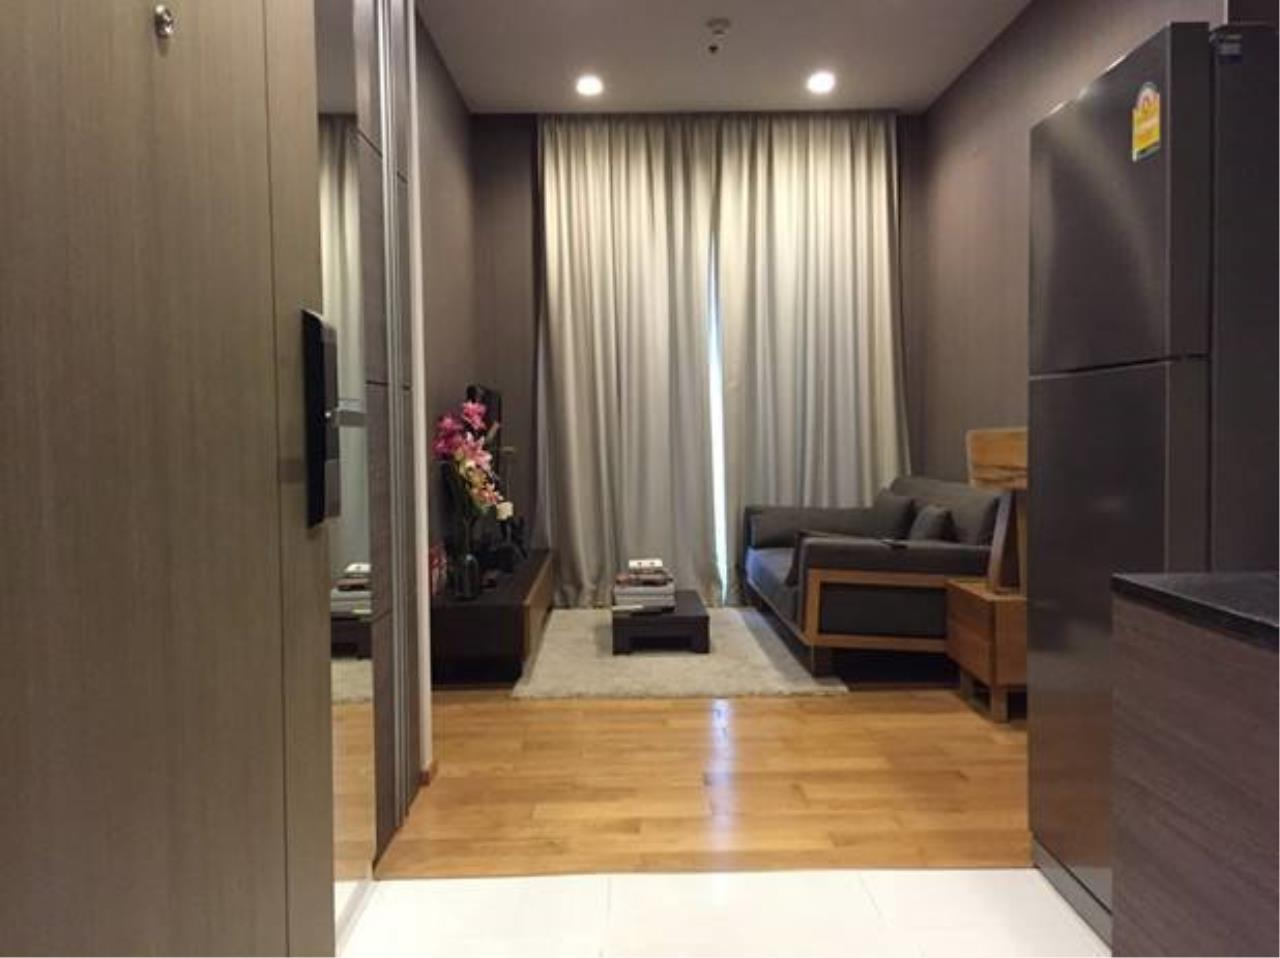 RE/MAX All Star Realty Agency's Keyne by Sansiri for sale/rent (BTS Thong Lor) 12